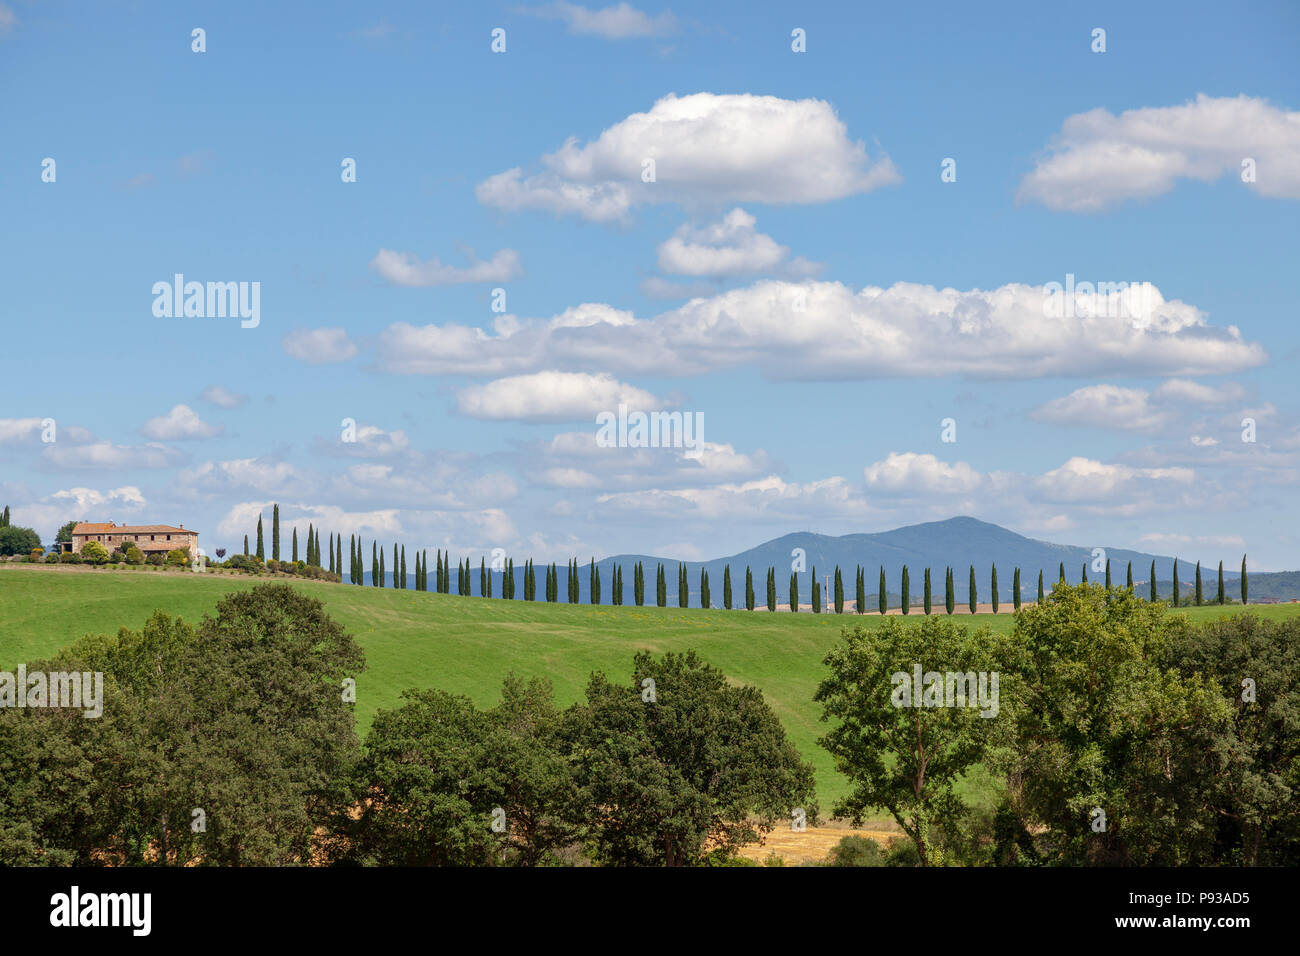 In the vicinity of the Bagno Vignoni (Tuscany - Italy), a perfect alignment of cypresses leading to a property. A proximité du Bain Vignoni (Toscane - - Stock Image